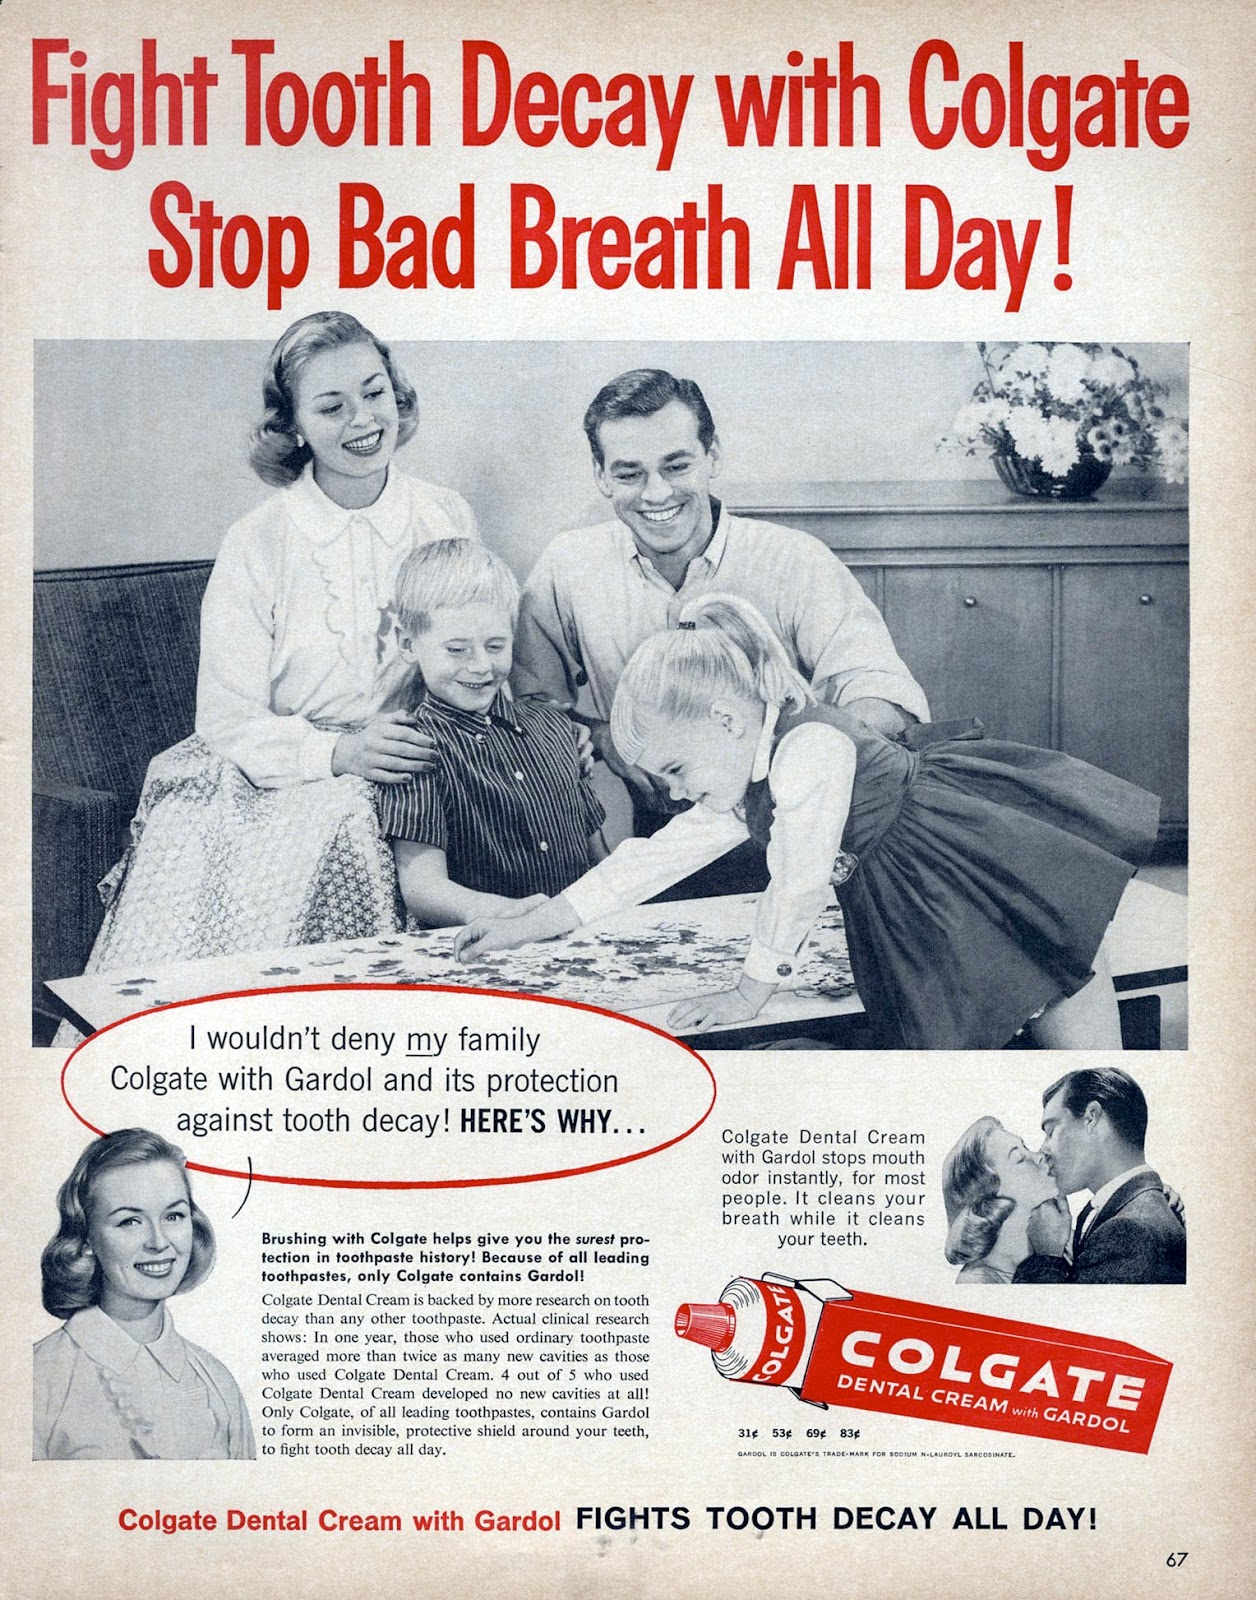 The Visual Primer Of Advertising Cliches Fight Tooth Decay With Autoette 24 Volt Wiring Diagram Colgate Stop Bad Breath All Day 1960